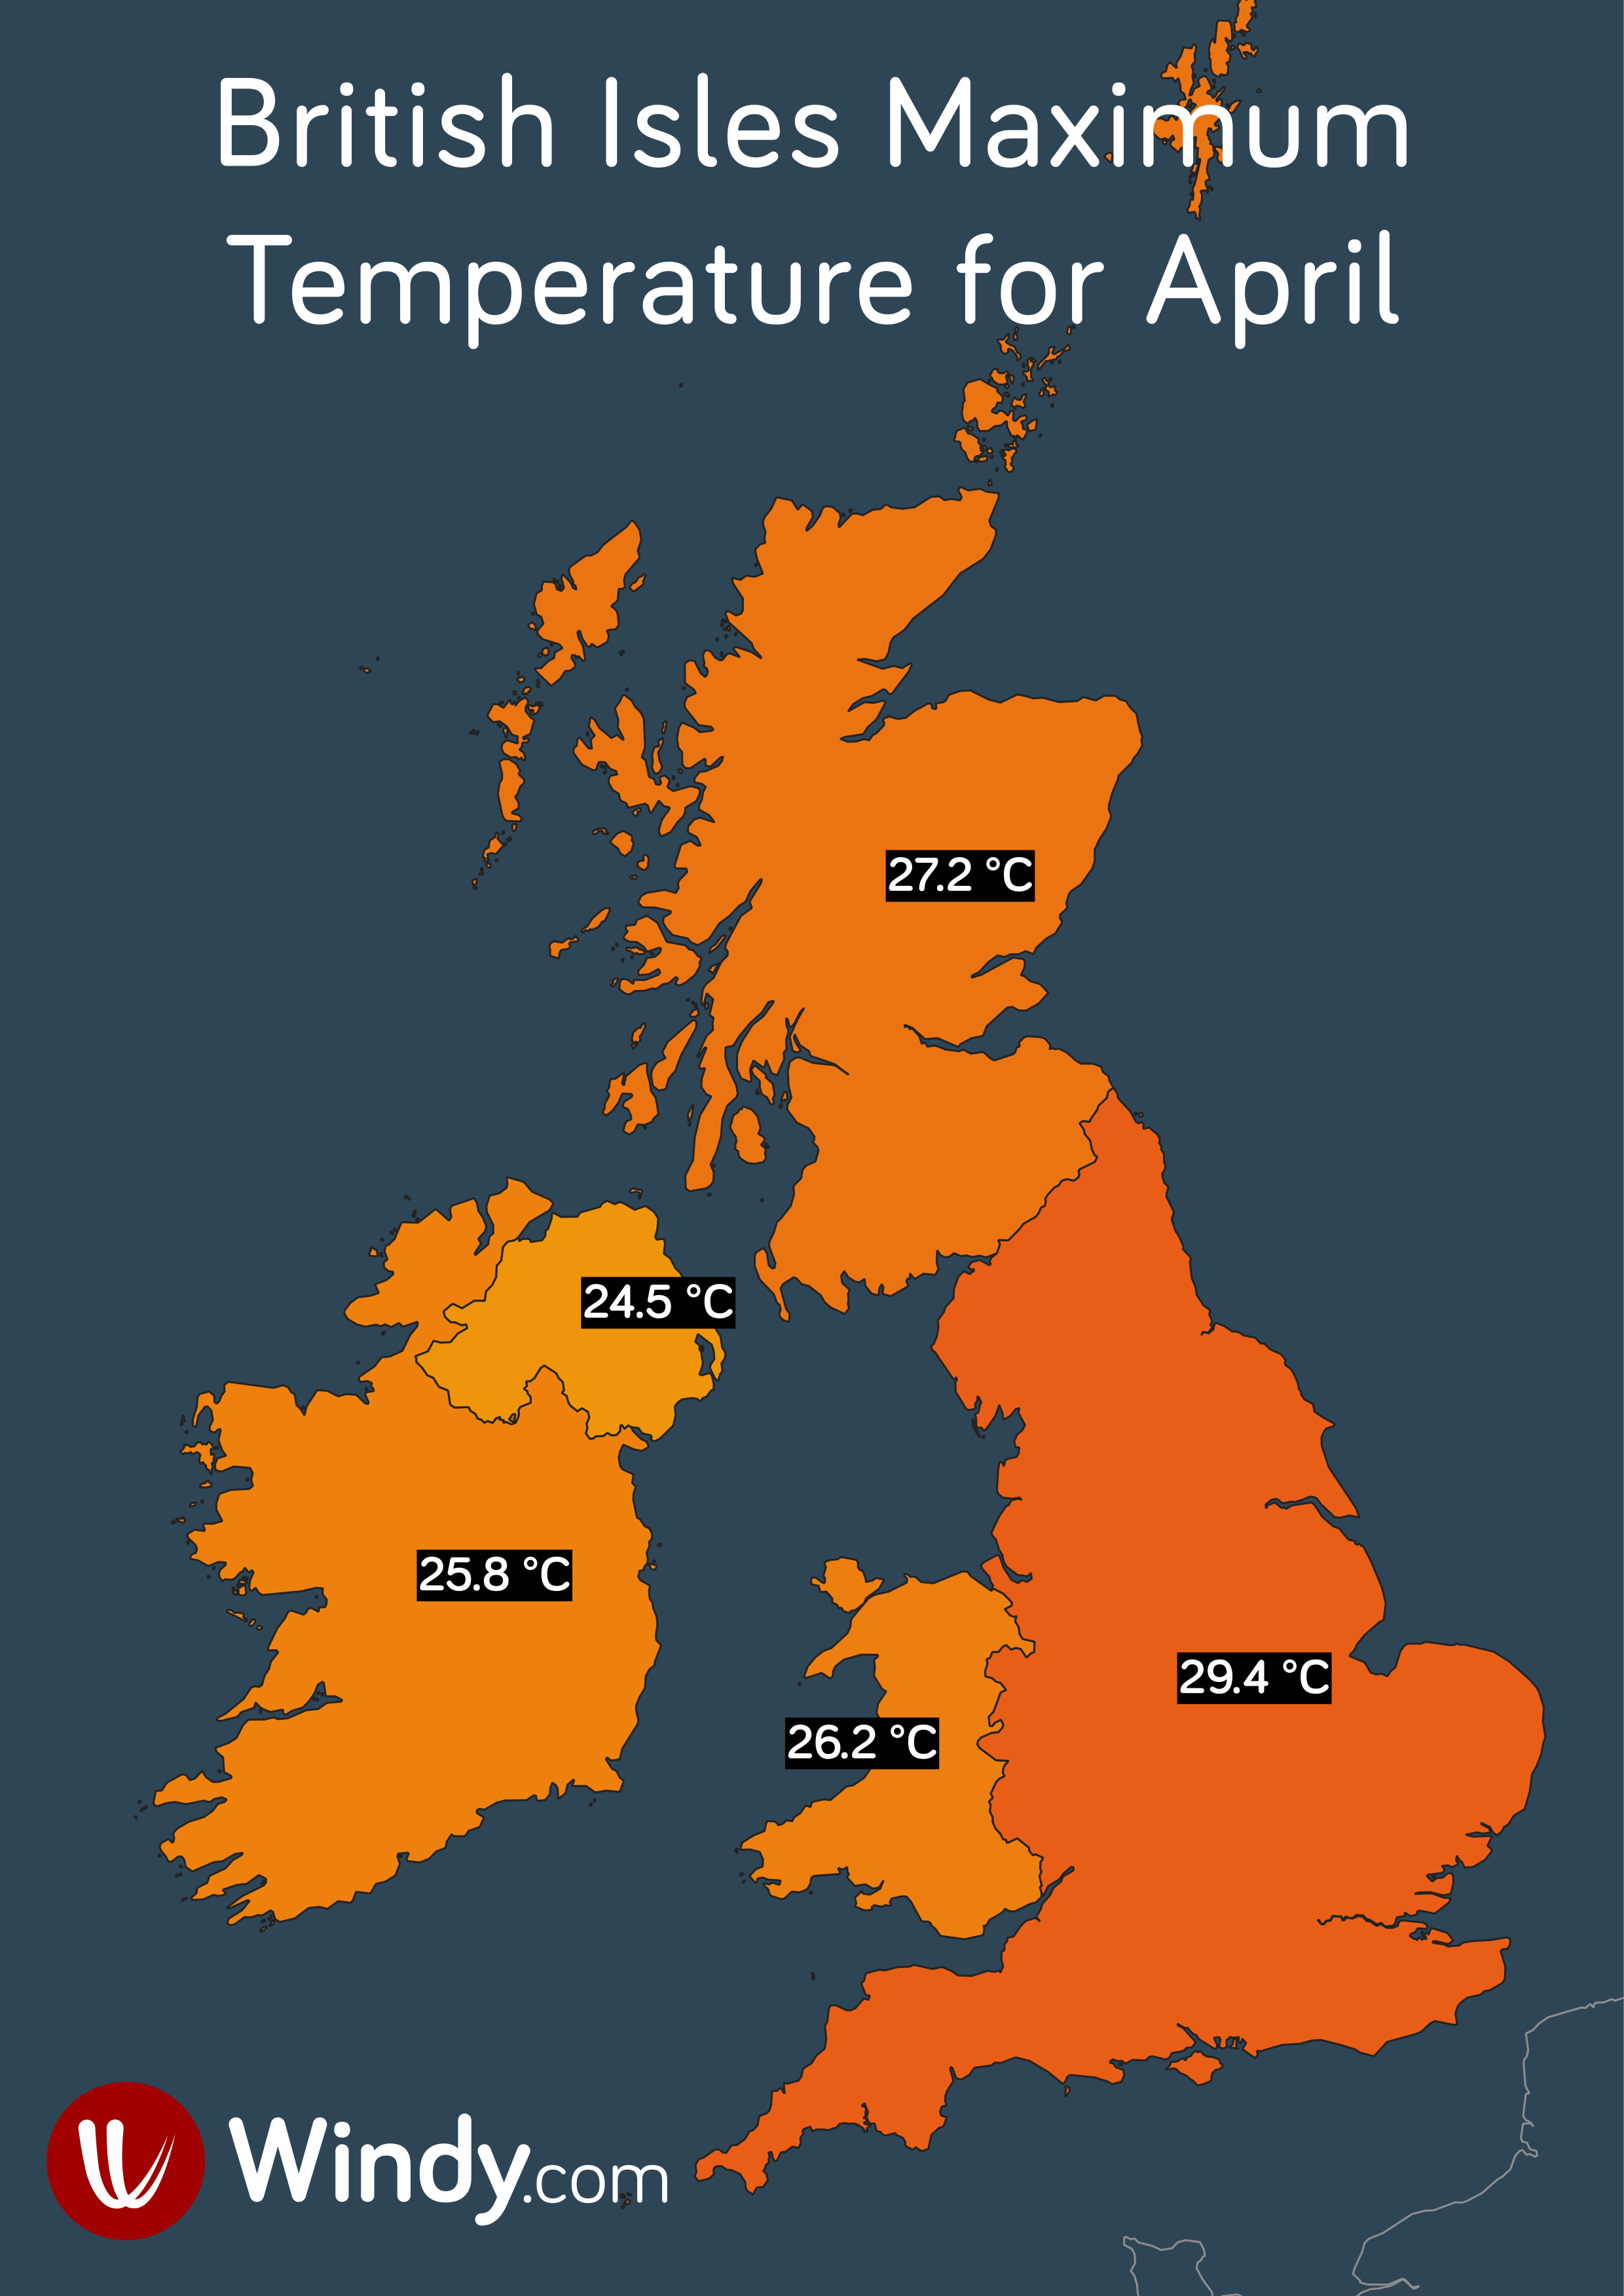 photo: Windy.com;licence: cc;desc: British Isles Maximum Temperature for April.;